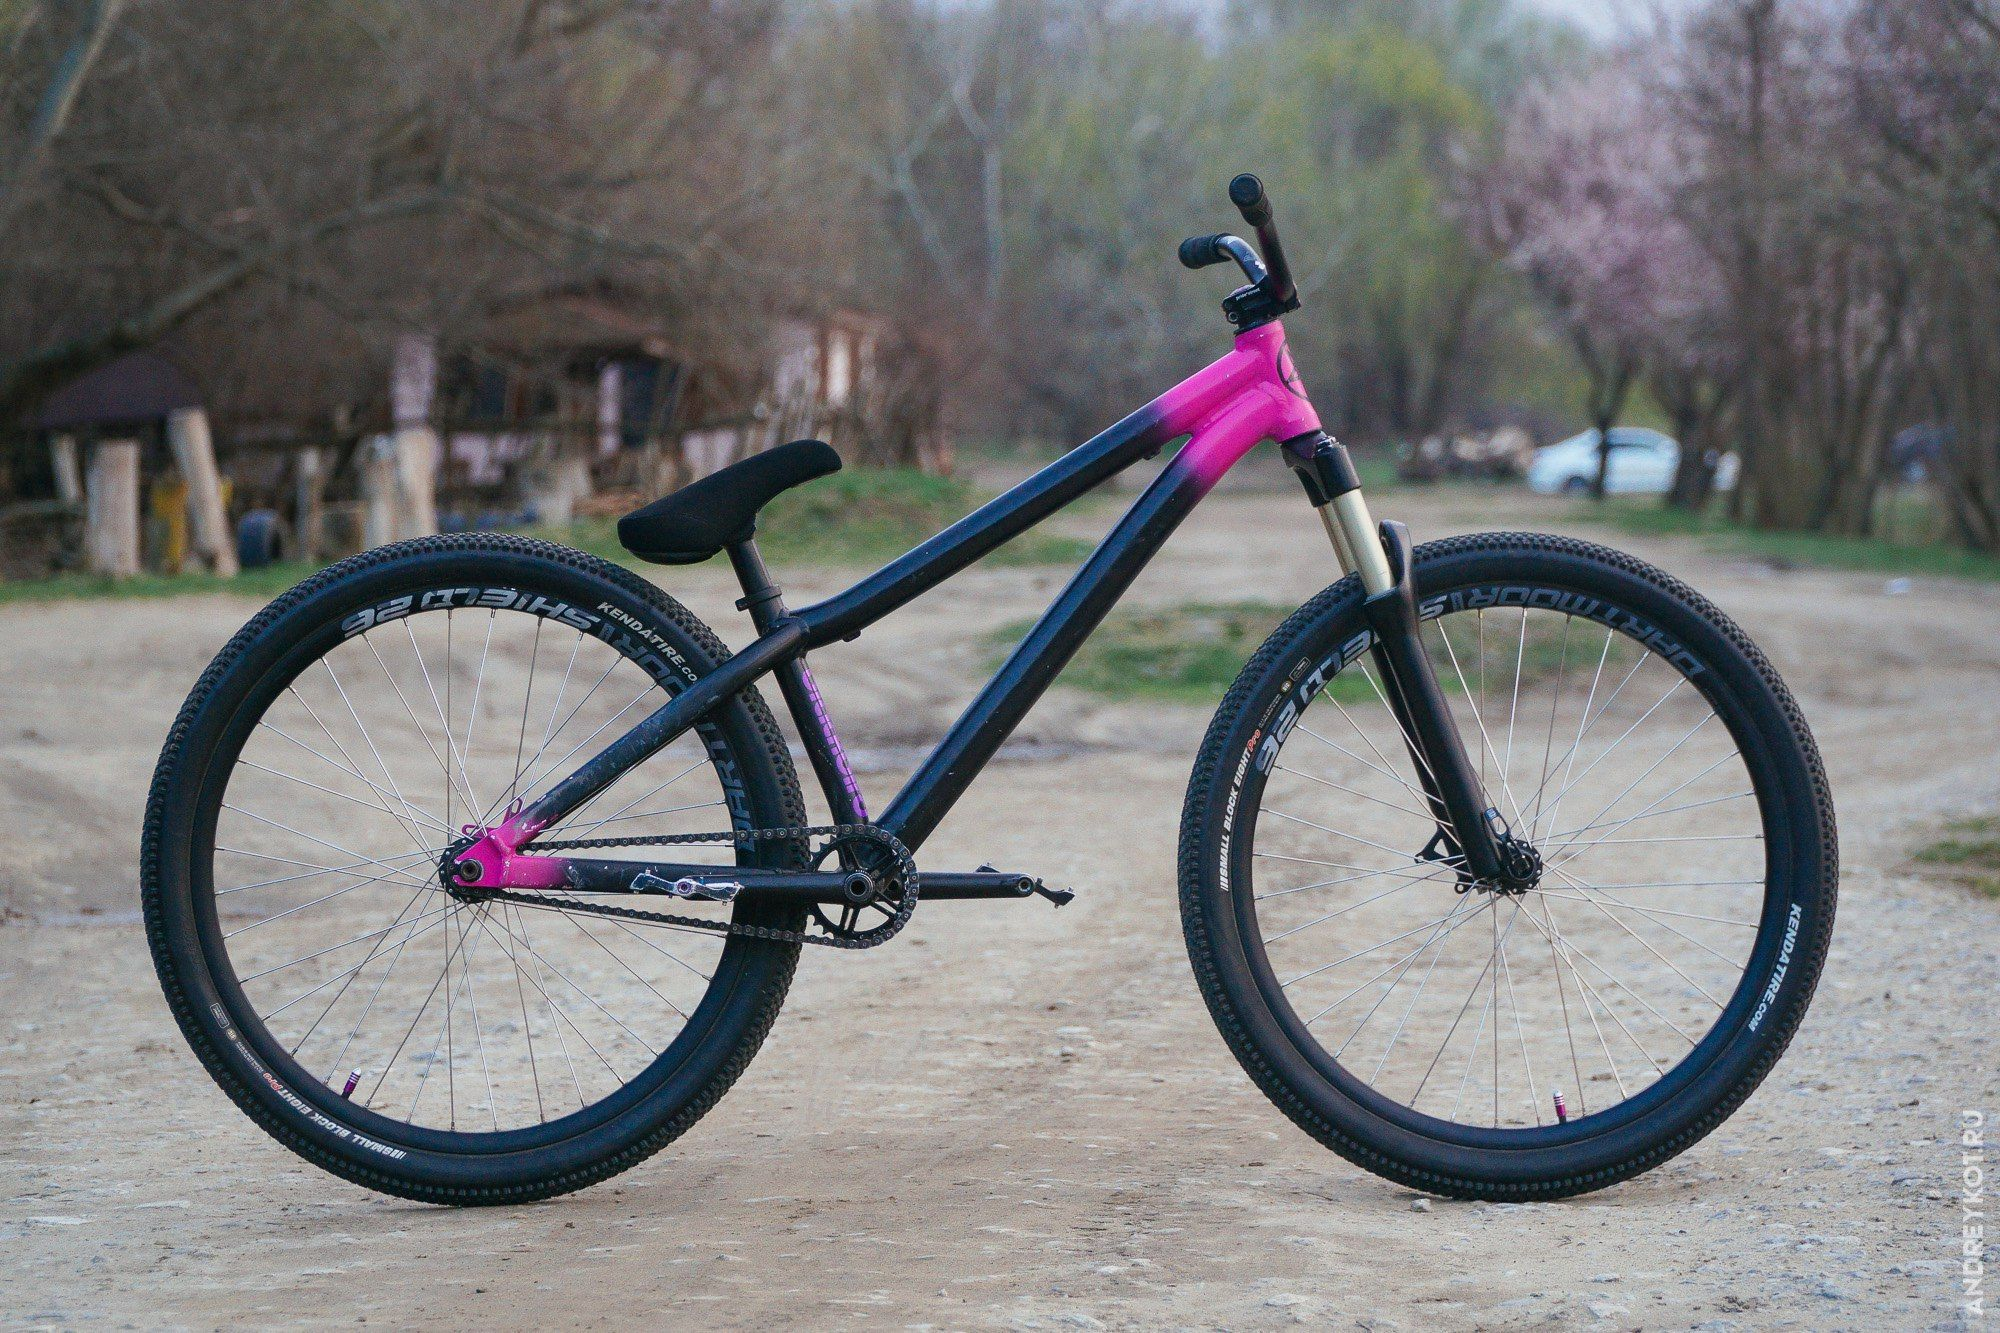 Pin de Max Chernyshev en hardtail, mtb, street dirt bike | Pinterest ...